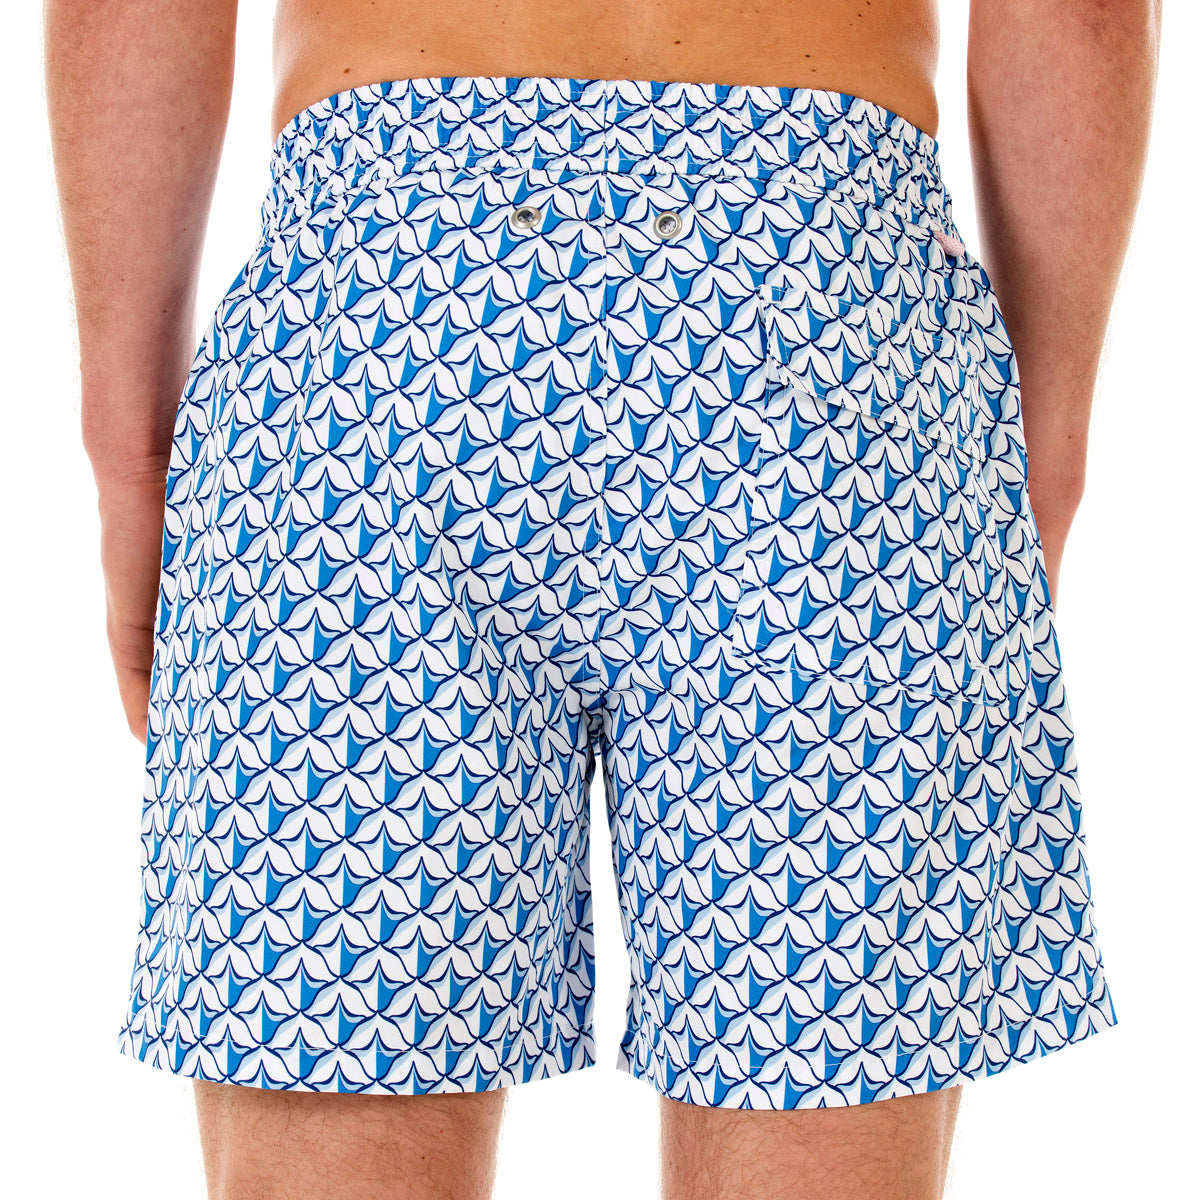 033bbad58e4 Mens swim trunks   PINEAPPLE PRICKLES - BLUE - Pink House Mustique